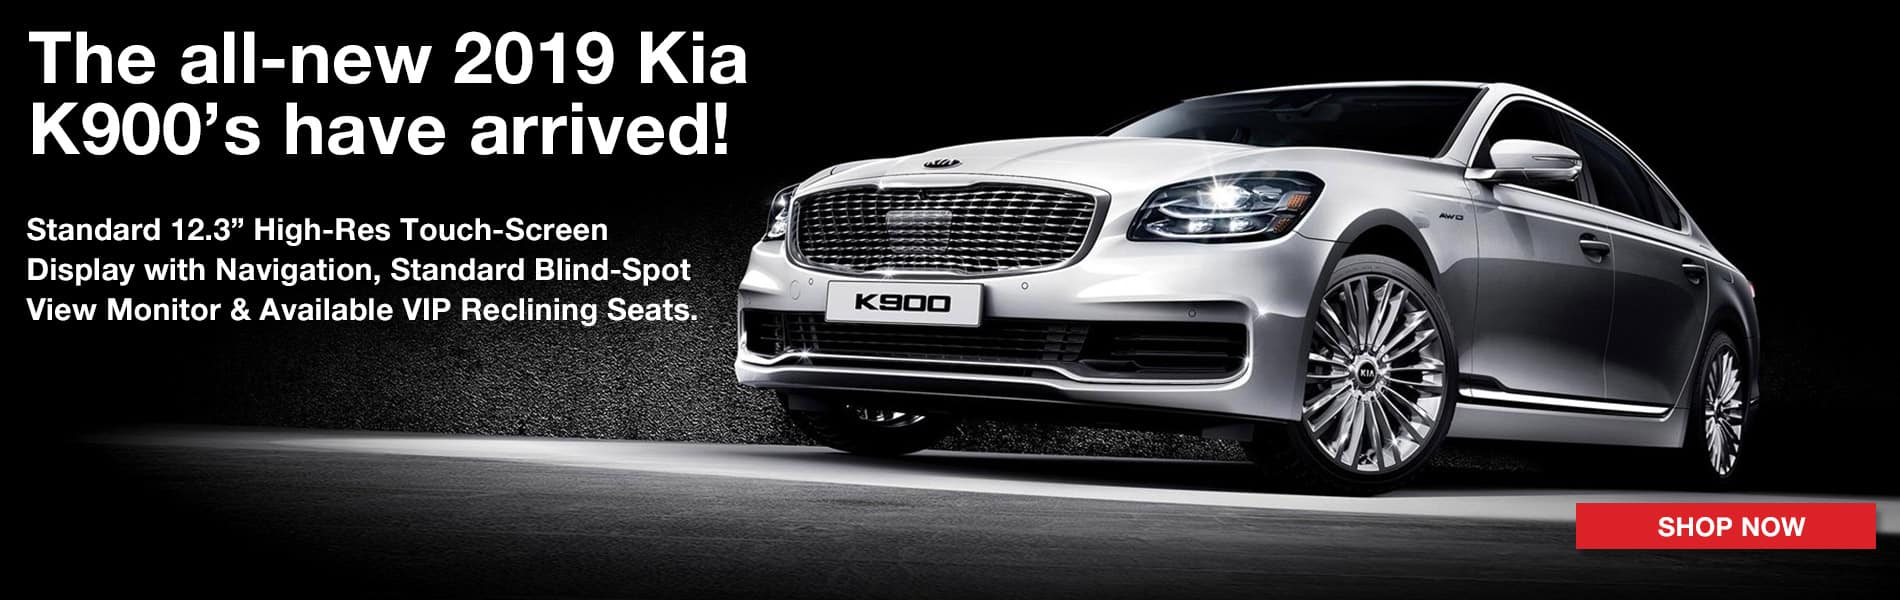 The all new 2019 K900 is here! Shop now!